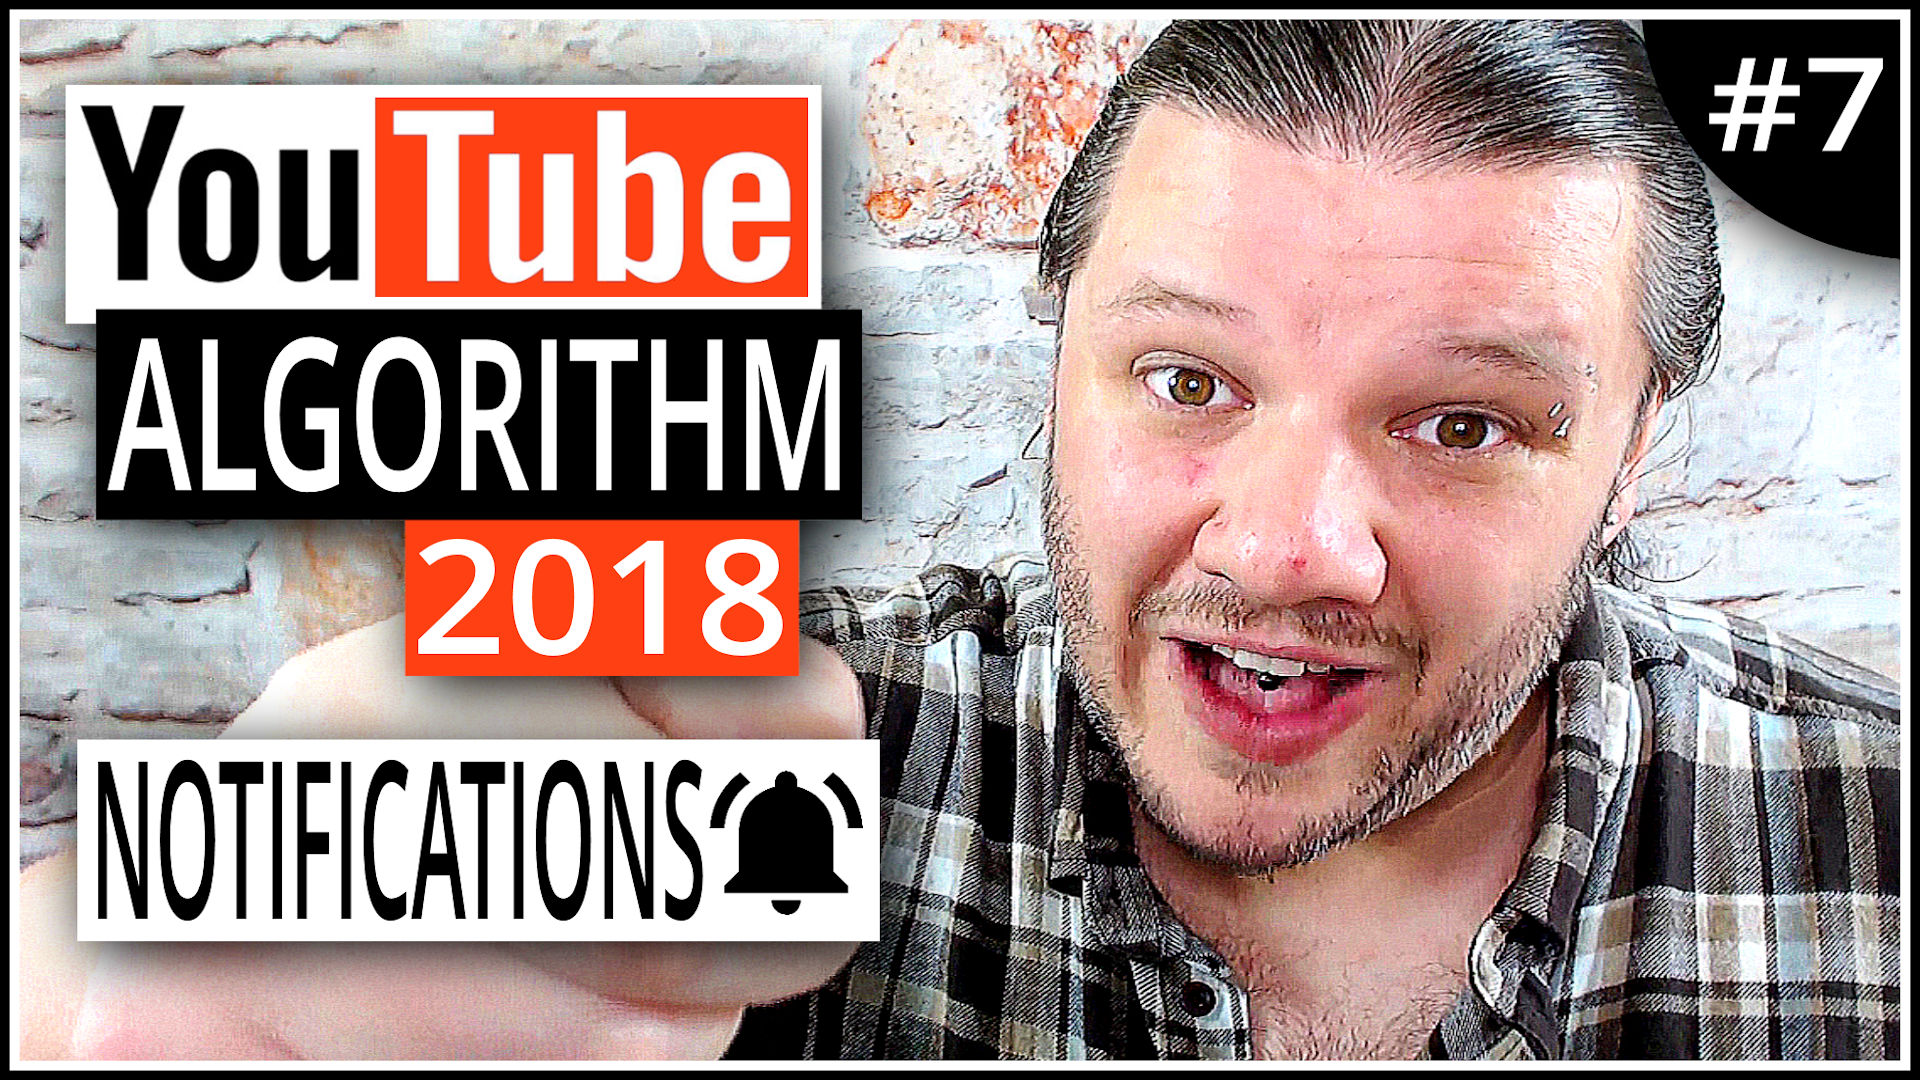 alan spicer,alanspicer,youtube tips,youtube tricks,asyt,youtube tips 2018,youtube algorithm 2018,youtube algorithm,youtube search algorithm,tags,seo,the youtube algorithm,2018,2018 youtube algorithm,algorithm,youtube,youtube series,youtube algorithm playlist,YouTube Search Algorithm for 2018,youtube algorithm notifications,notification squad,youtube notifications,youtube bell,youtuber notifications,bell icon,youtube bell icon,subscriber notifications,bell